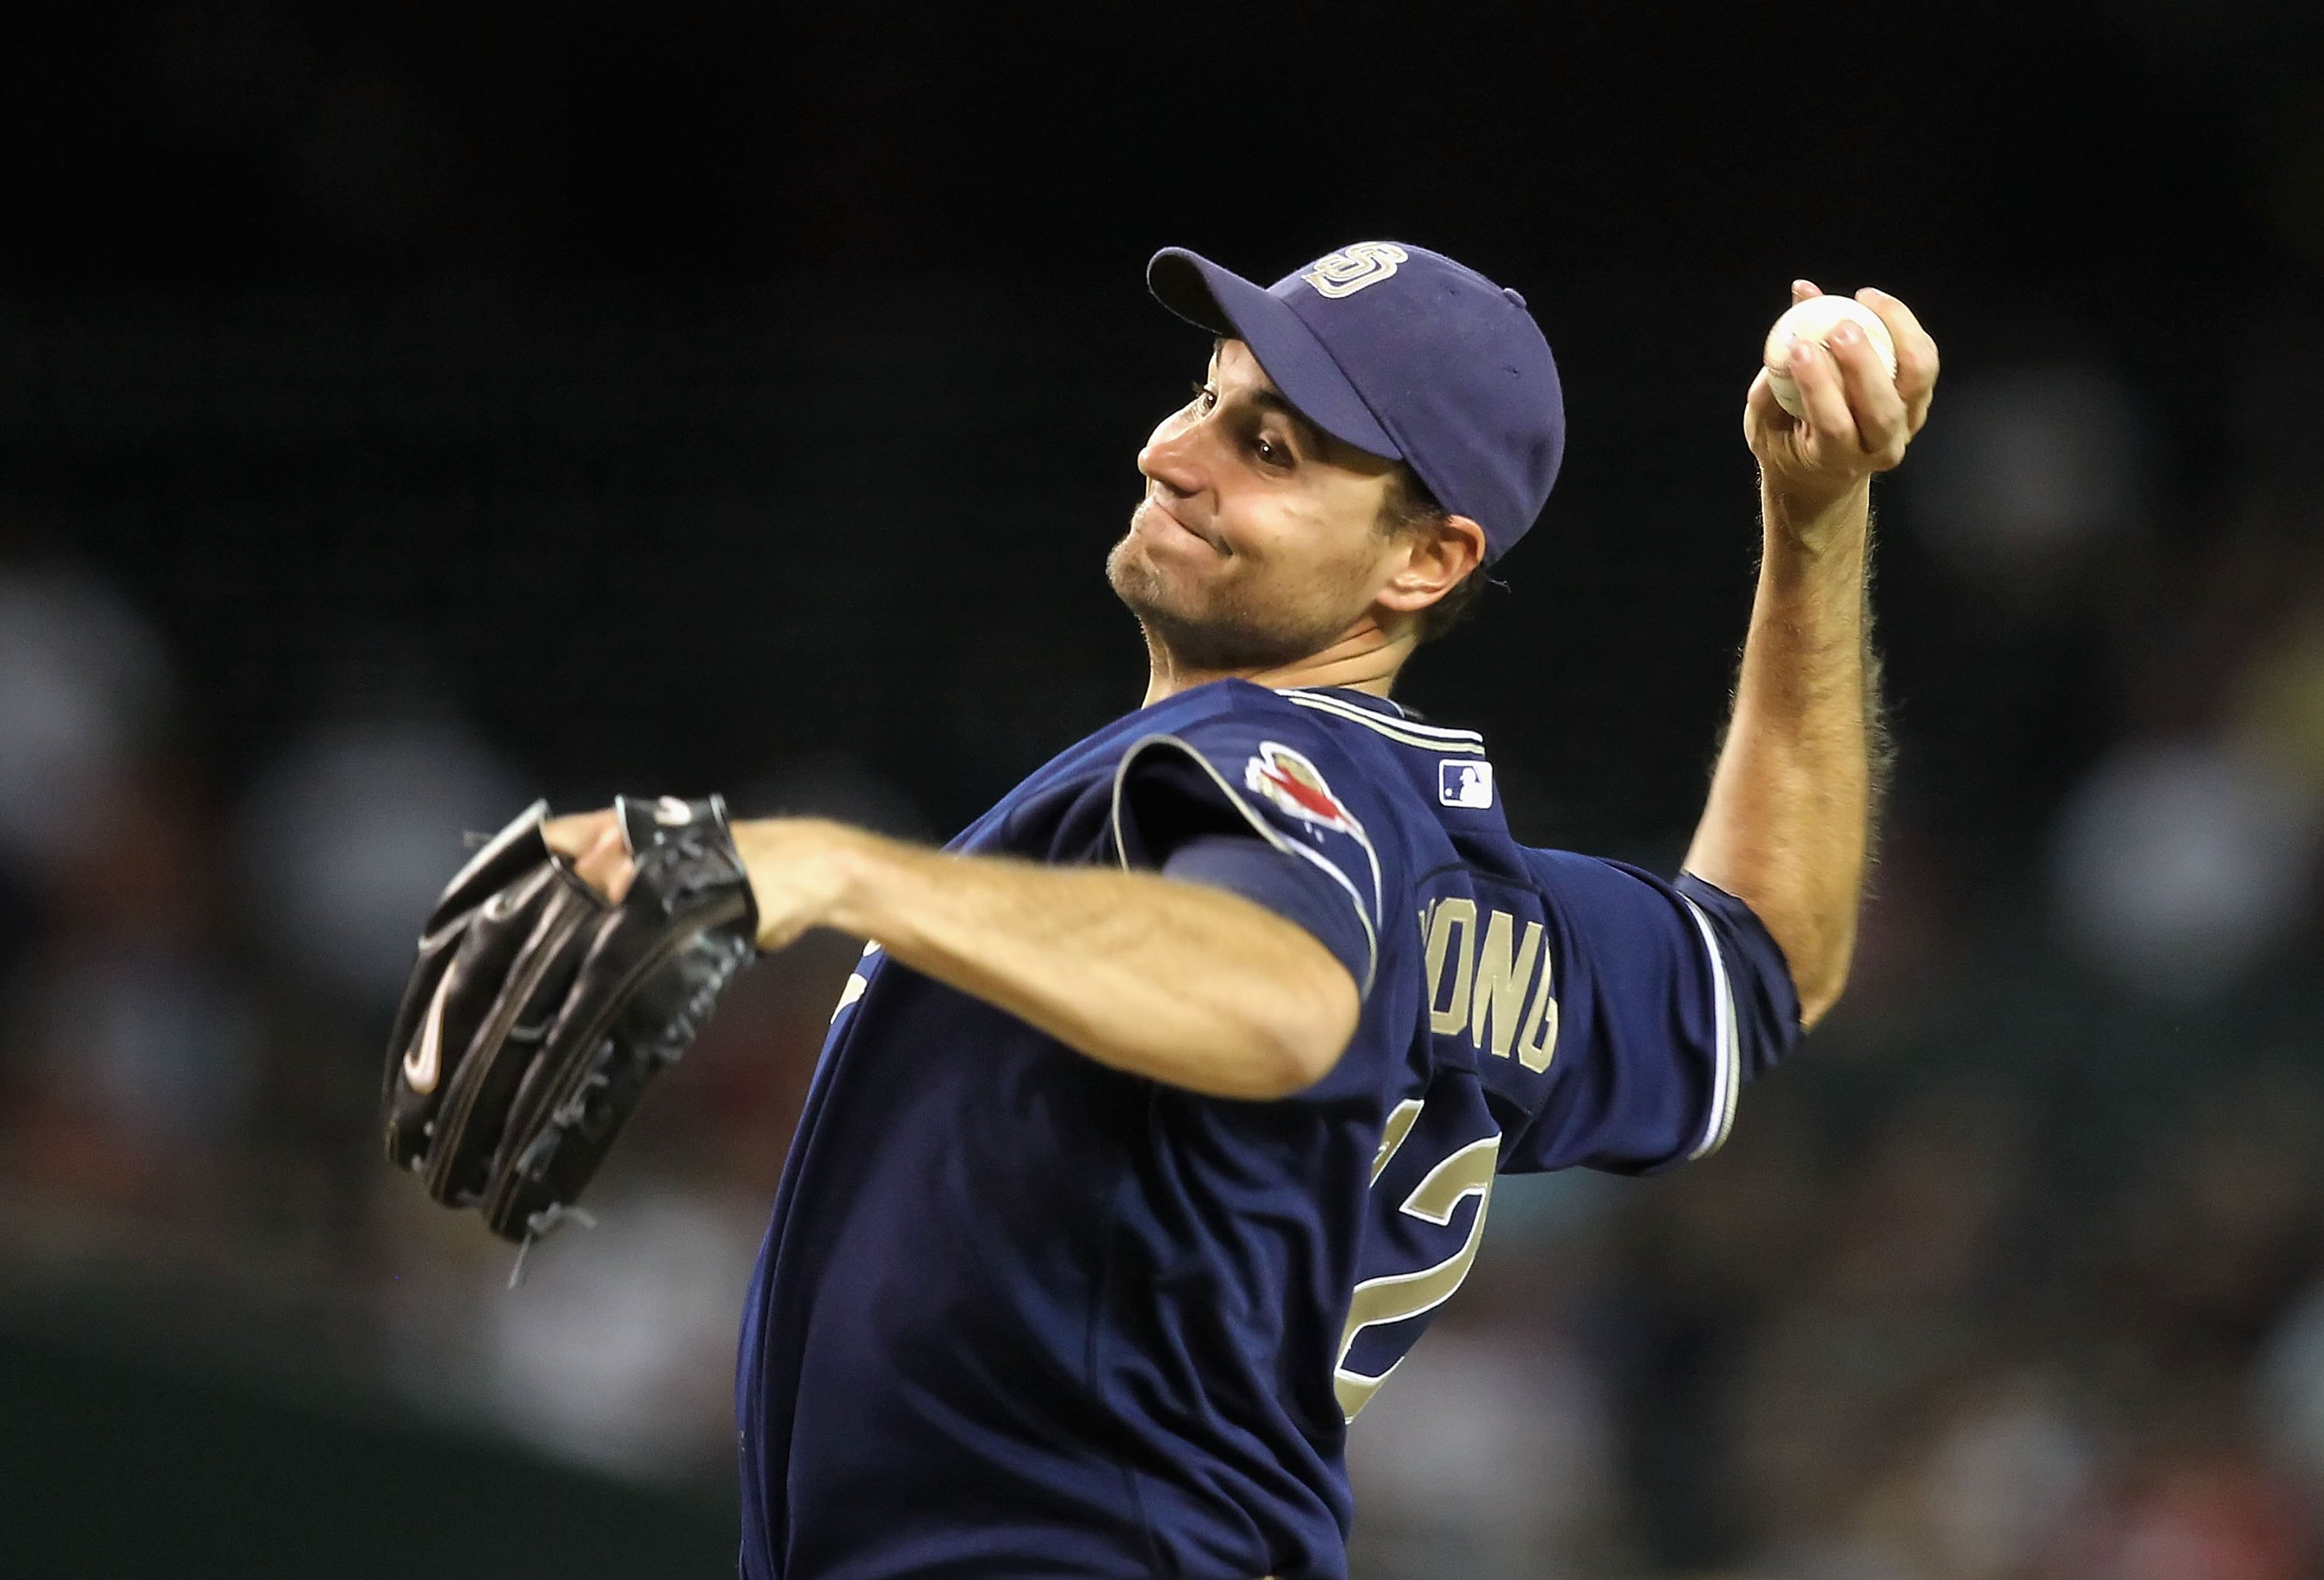 PHOENIX - APRIL 06:  Starting pitcher Chris Young #32 of the San Diego Padres pitches against the Arizona Diamondbacks during the major league baseball game at Chase Field on April 6, 2010 in Phoenix, Arizona.  The Padres defeated the Diamondbacks 6-3.  (